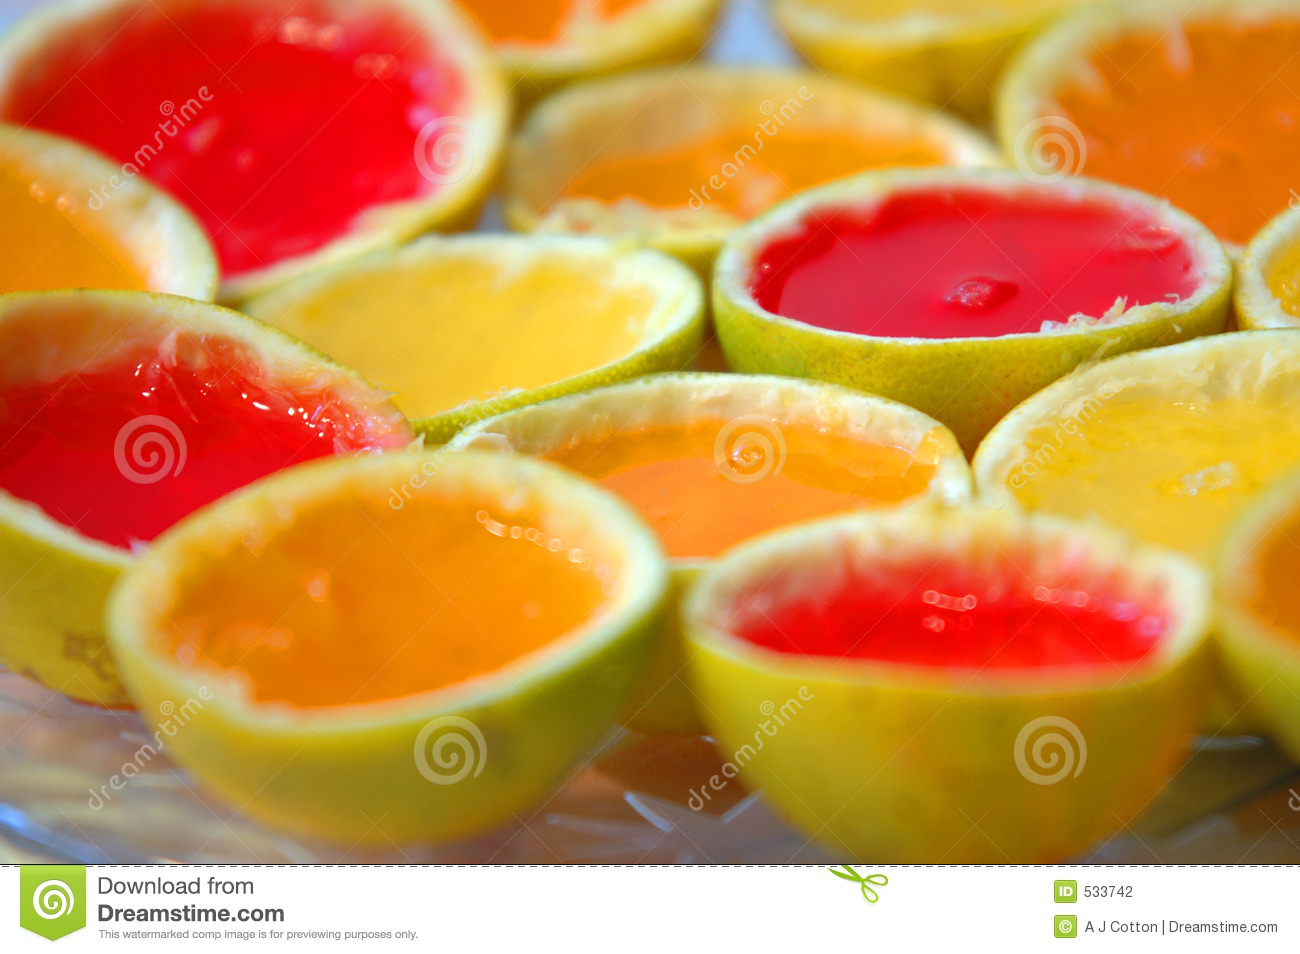 Bright Jelly Childrens Party Food On Orange Rinds Stock Photography